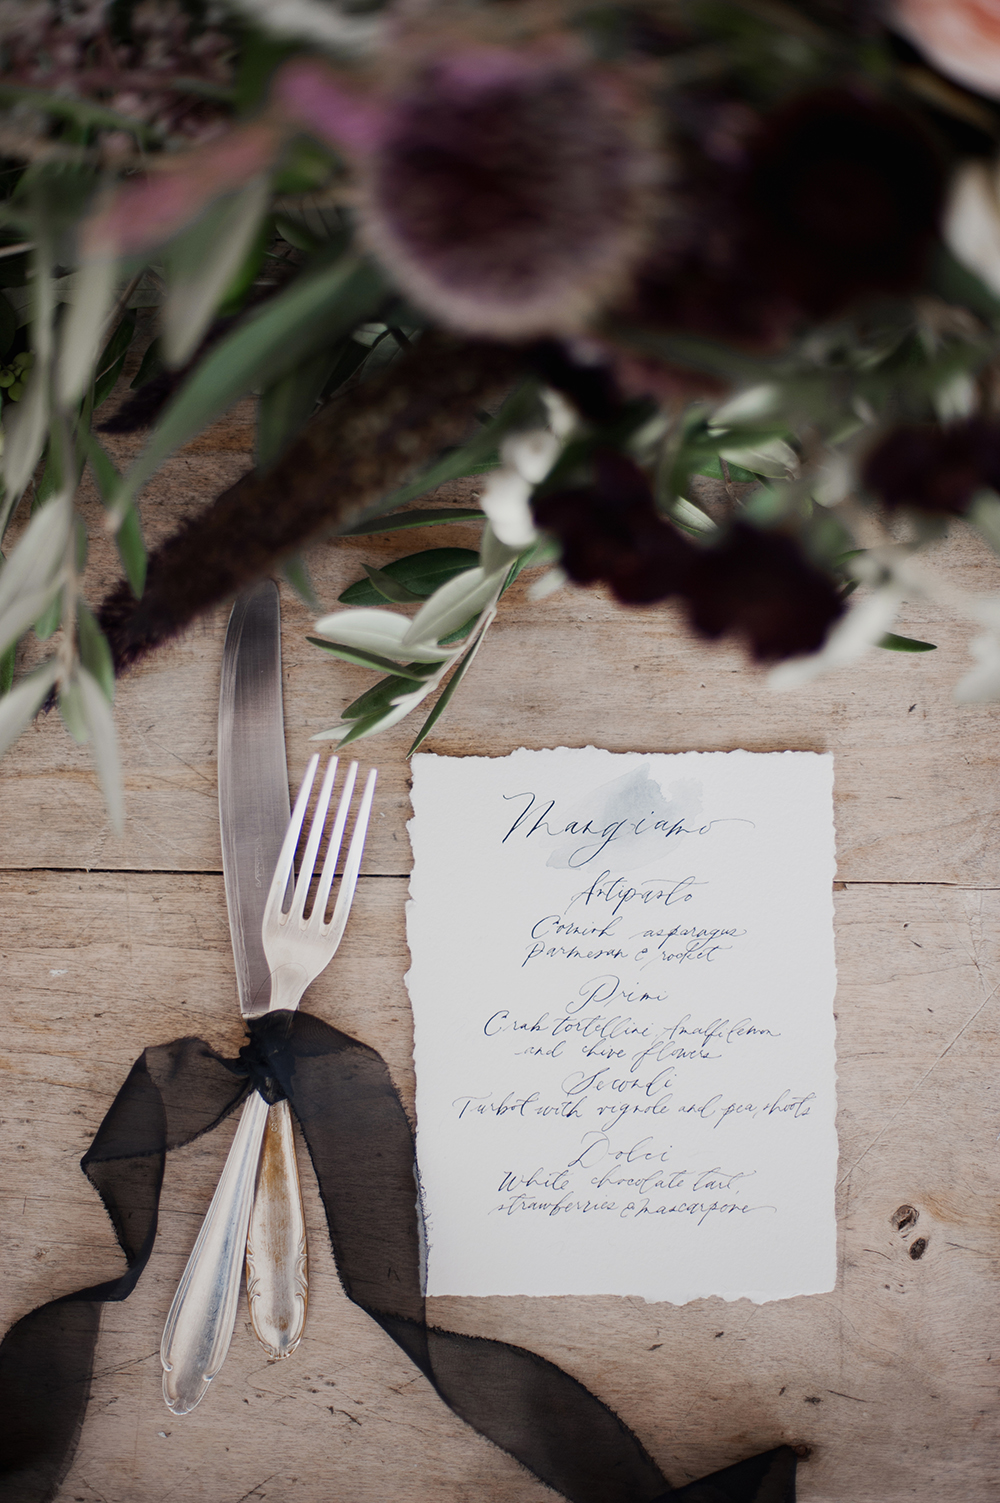 Puglia Wedding Creative Copy 0011